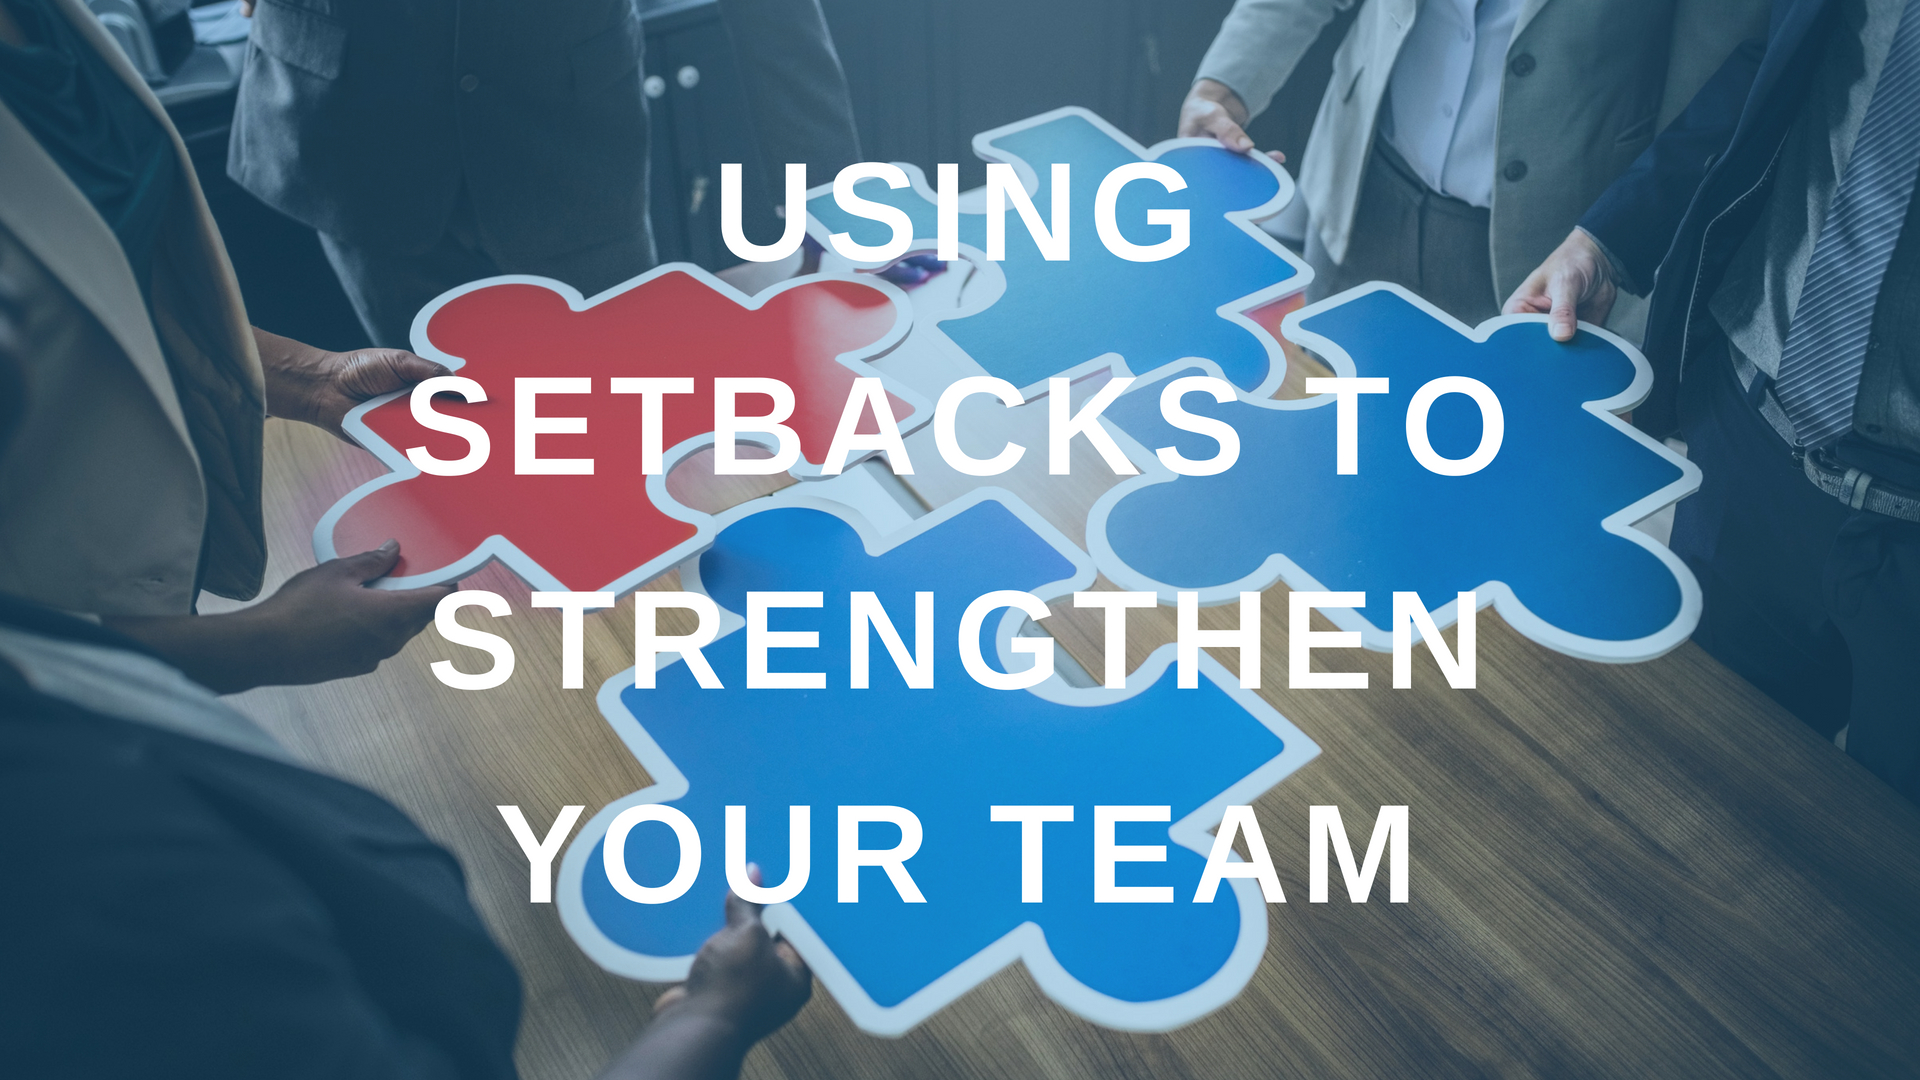 Using Setbacks to Strengthen Your Team